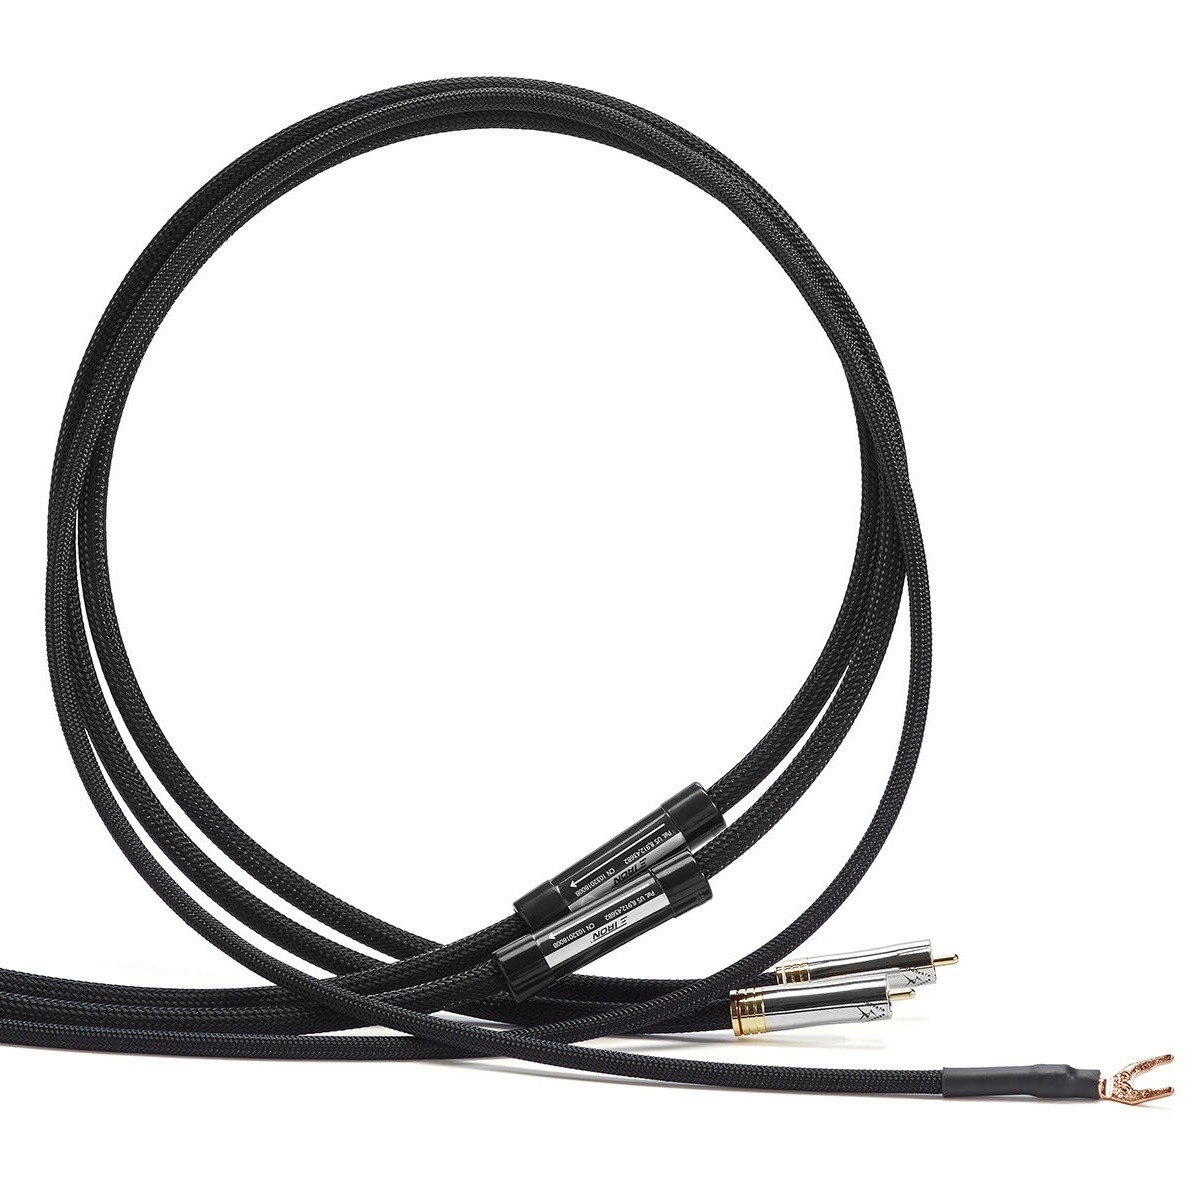 Shunyata Research Alpha Analog Interconnect Cables